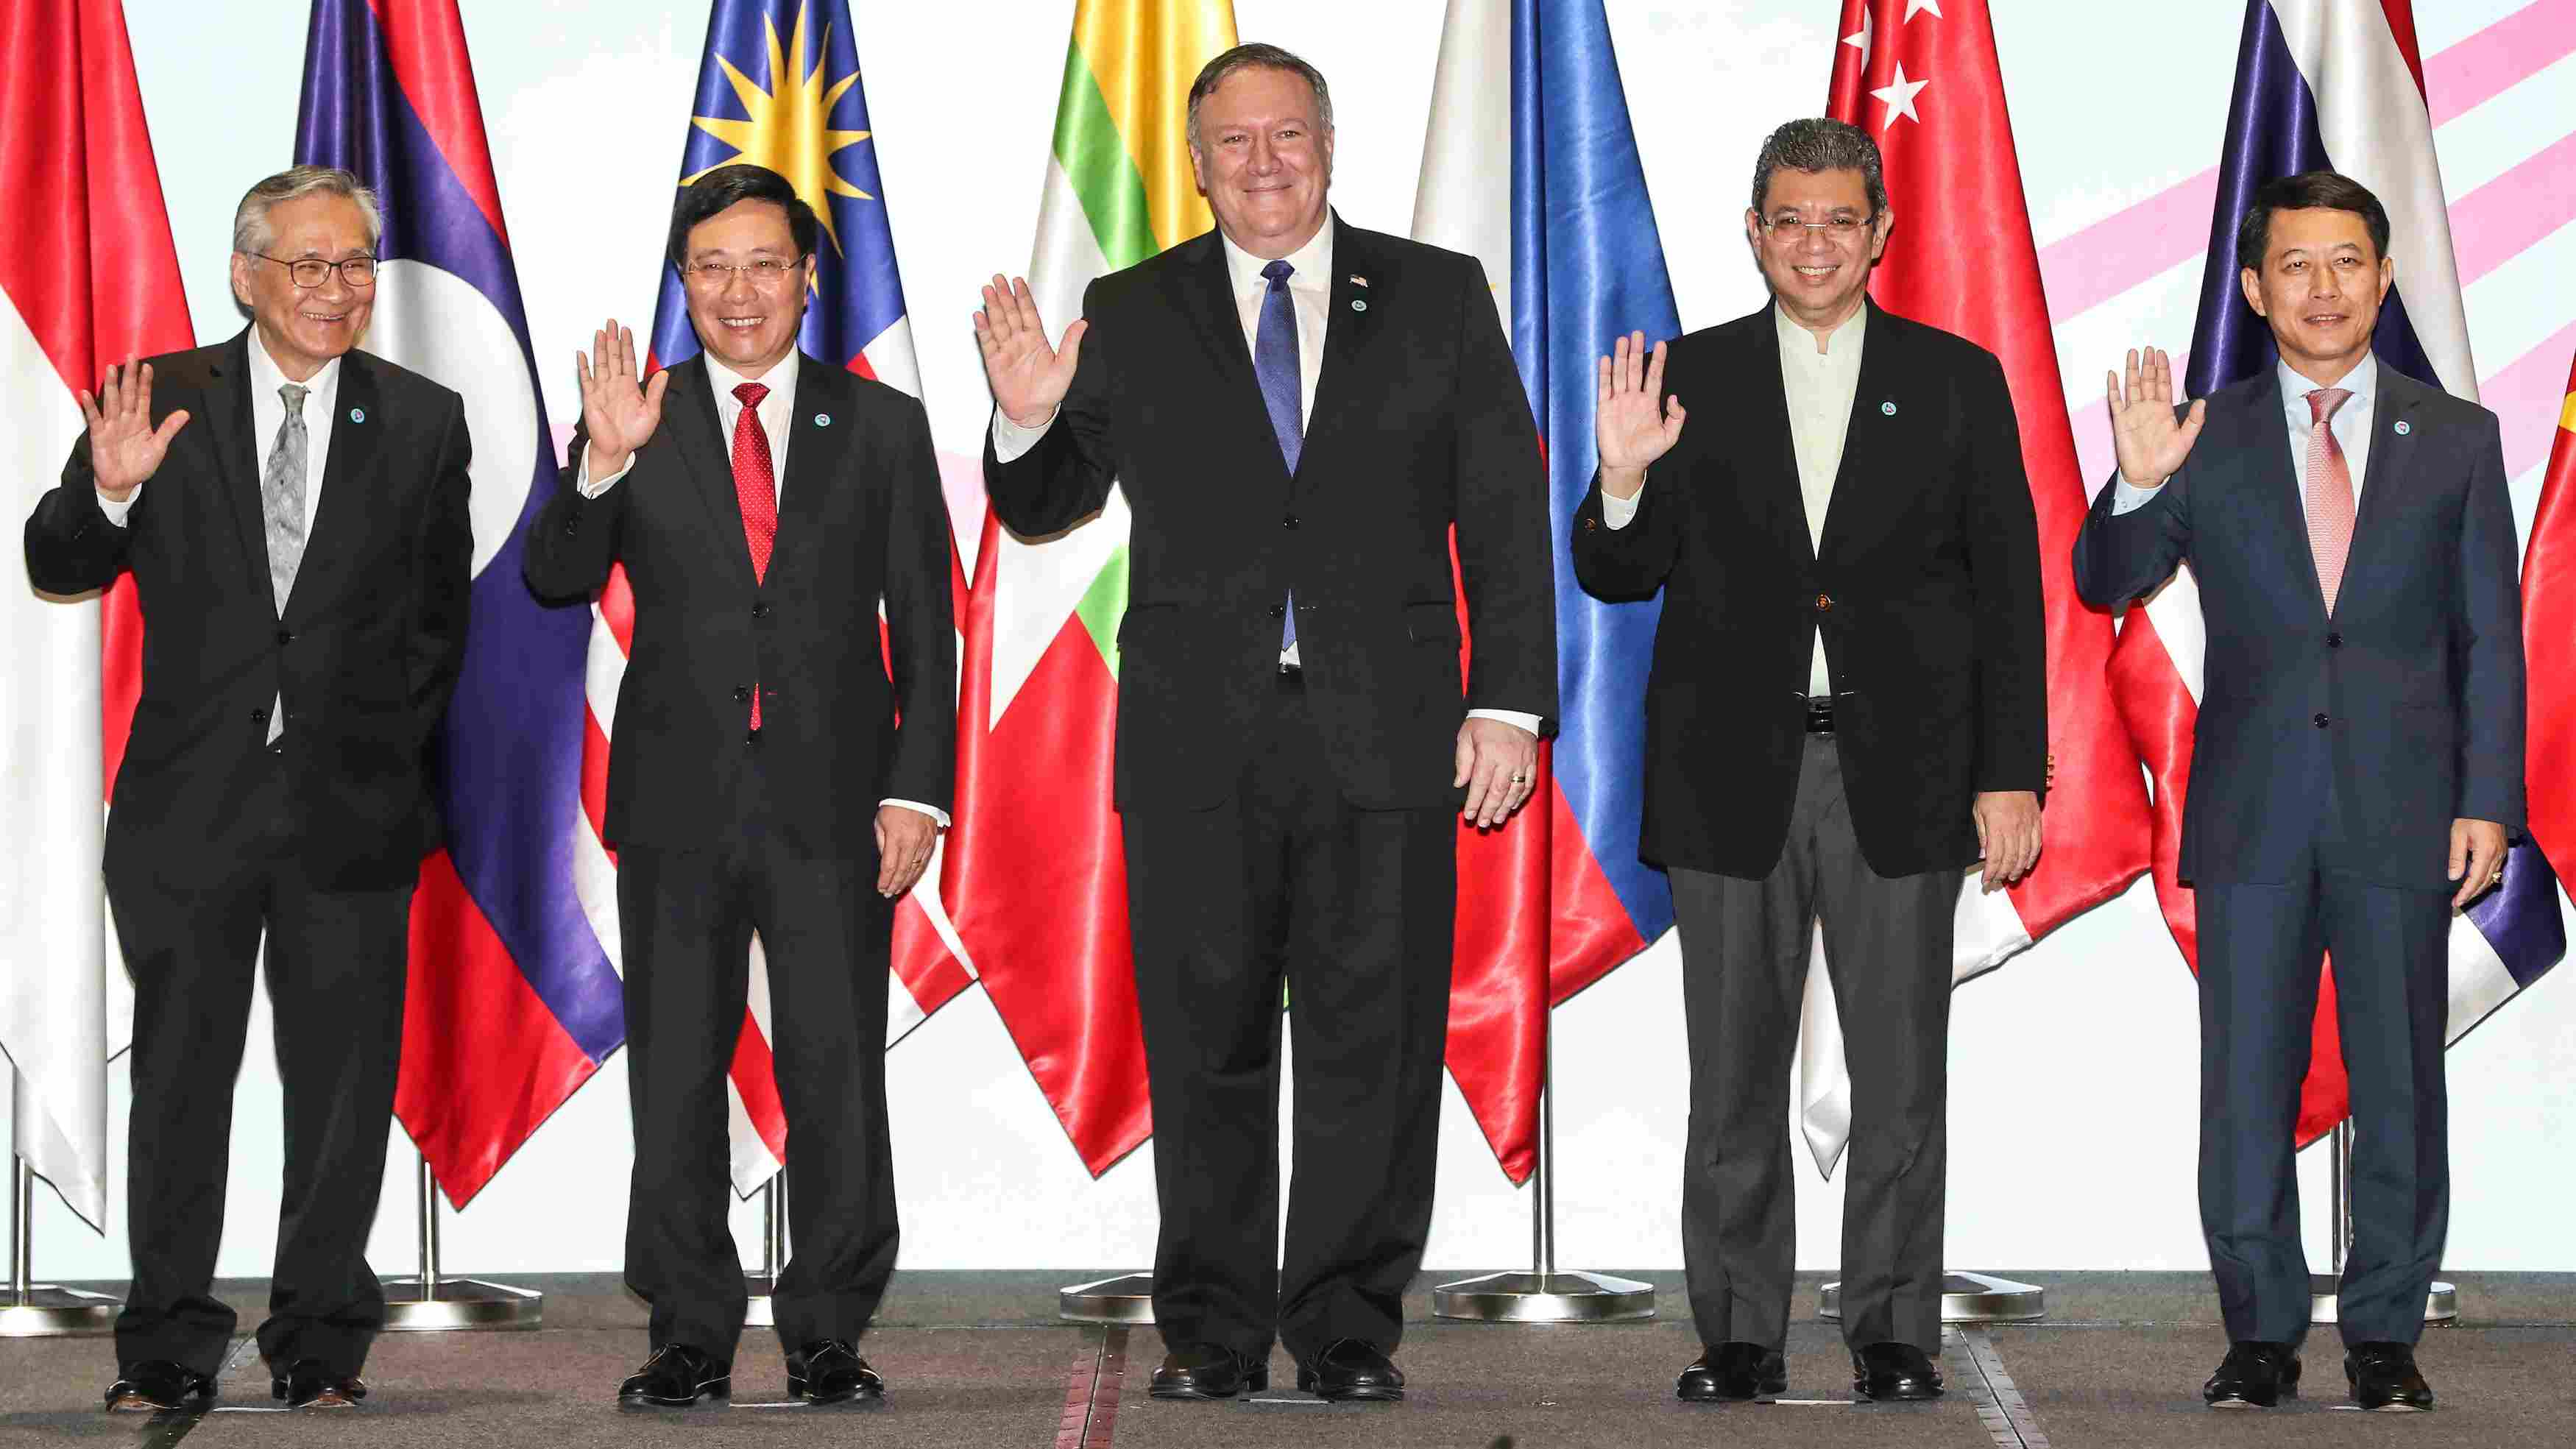 Pompeo's visit to Southeast Asia: What does the US want from ASEAN?